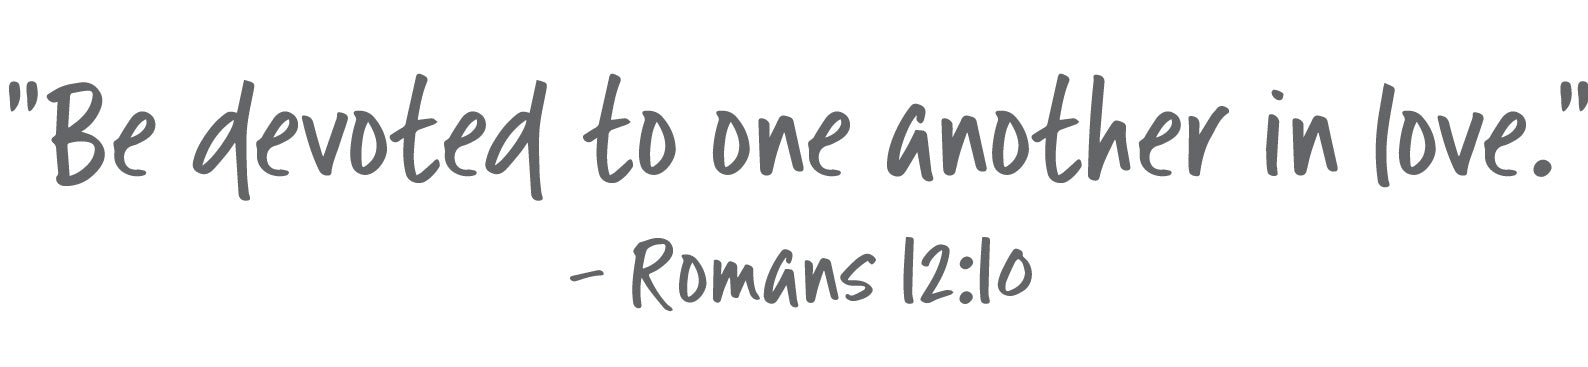 Be devoted to one another in love. - Romans 12:10